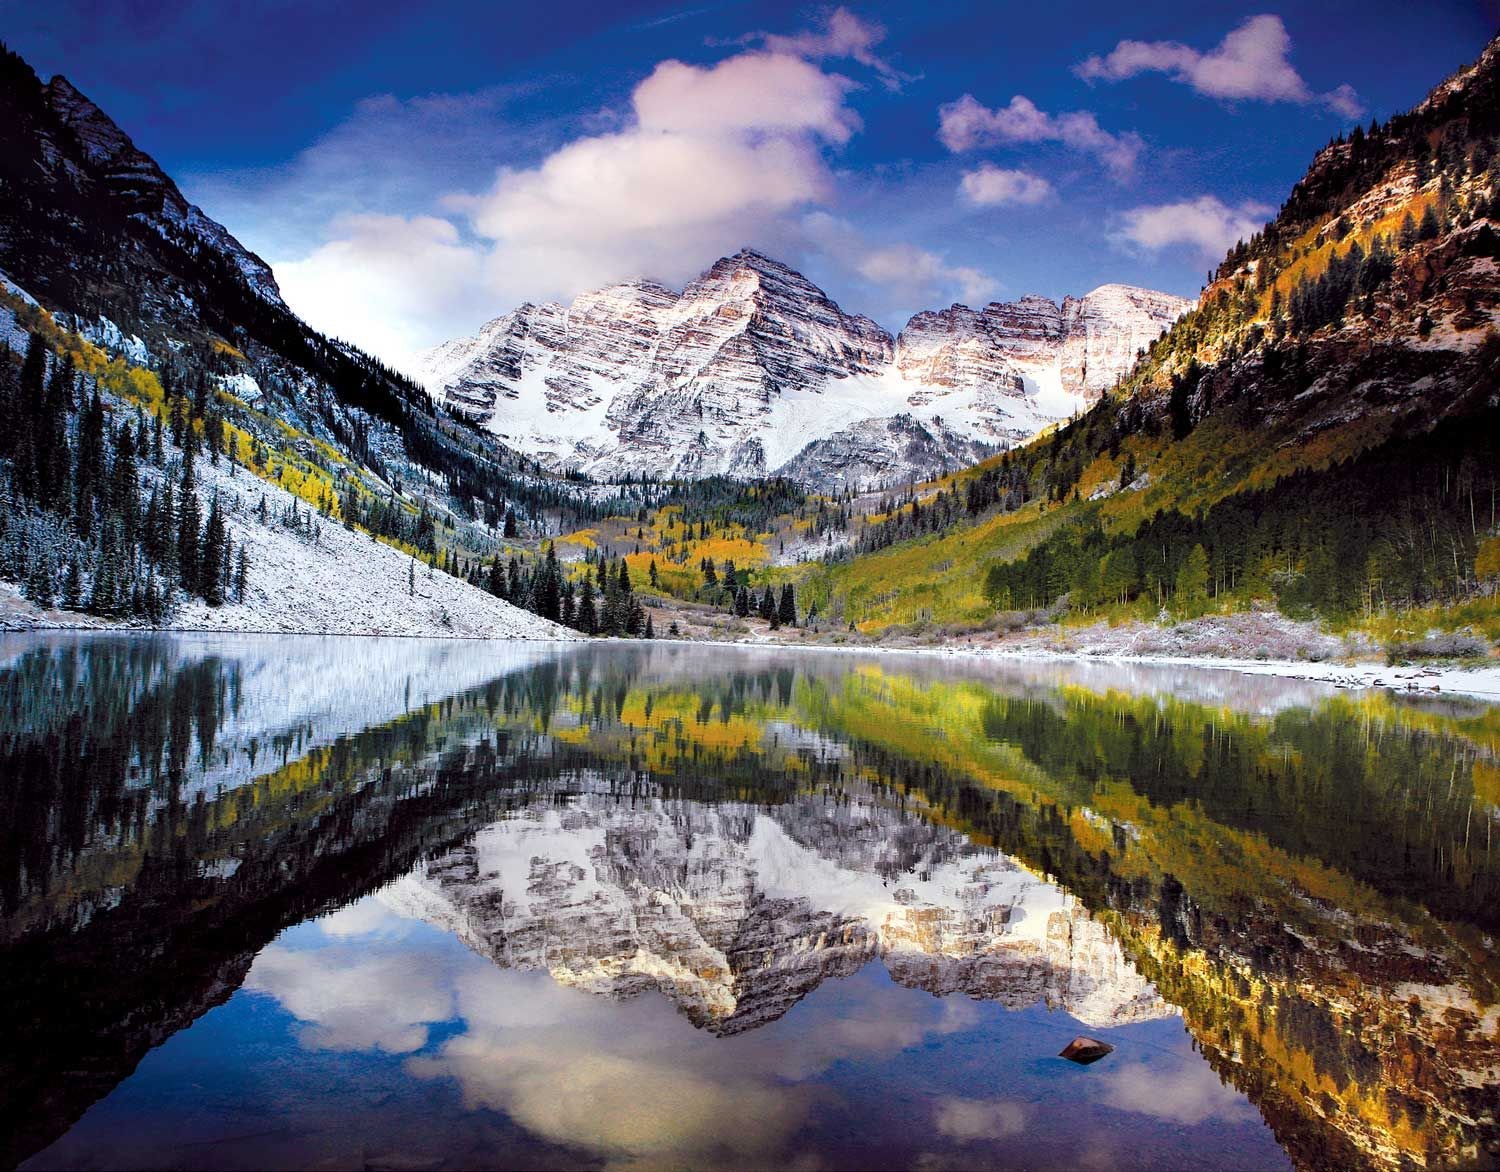 Maroon Bells Colorado Hiking And Transportation Links Hikes